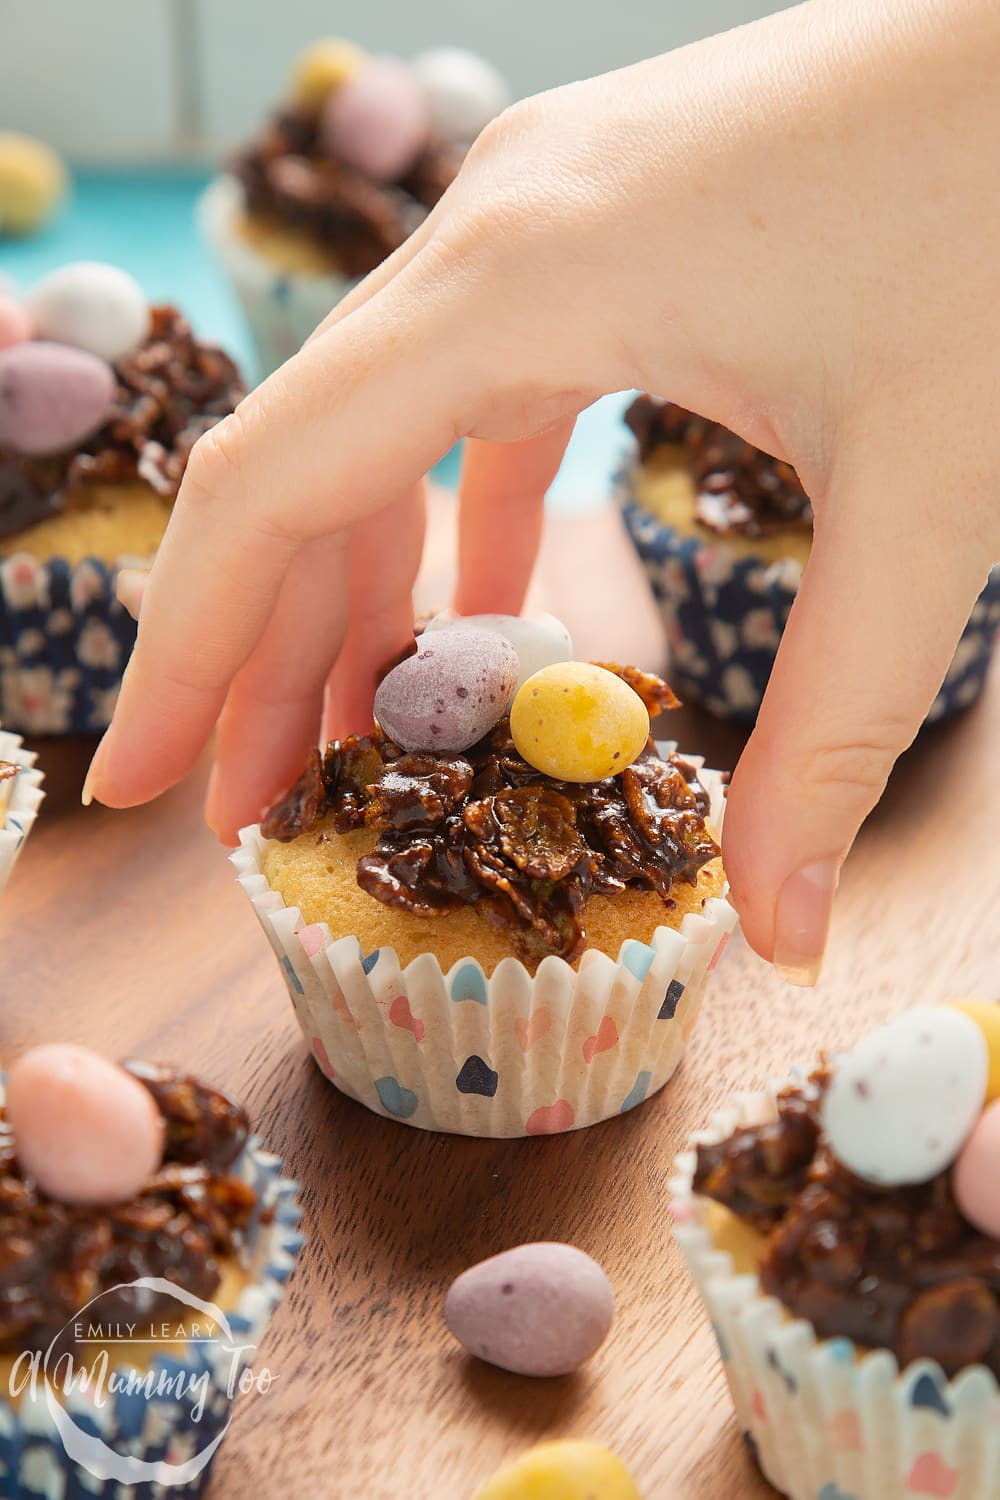 Front angle shot of hand holding a Easter nest cupcake with a mummy too logo in the lower-left corner